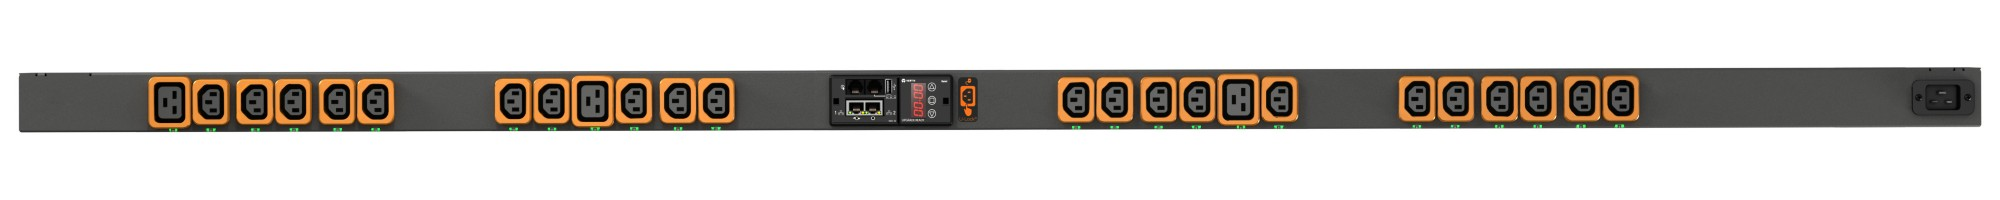 Vertiv GEIST RPDU SWITCHED 0U INPC20 230V 16A OUTP (21)C13 power distribution unit (PDU) Black 24 AC outlet(s)